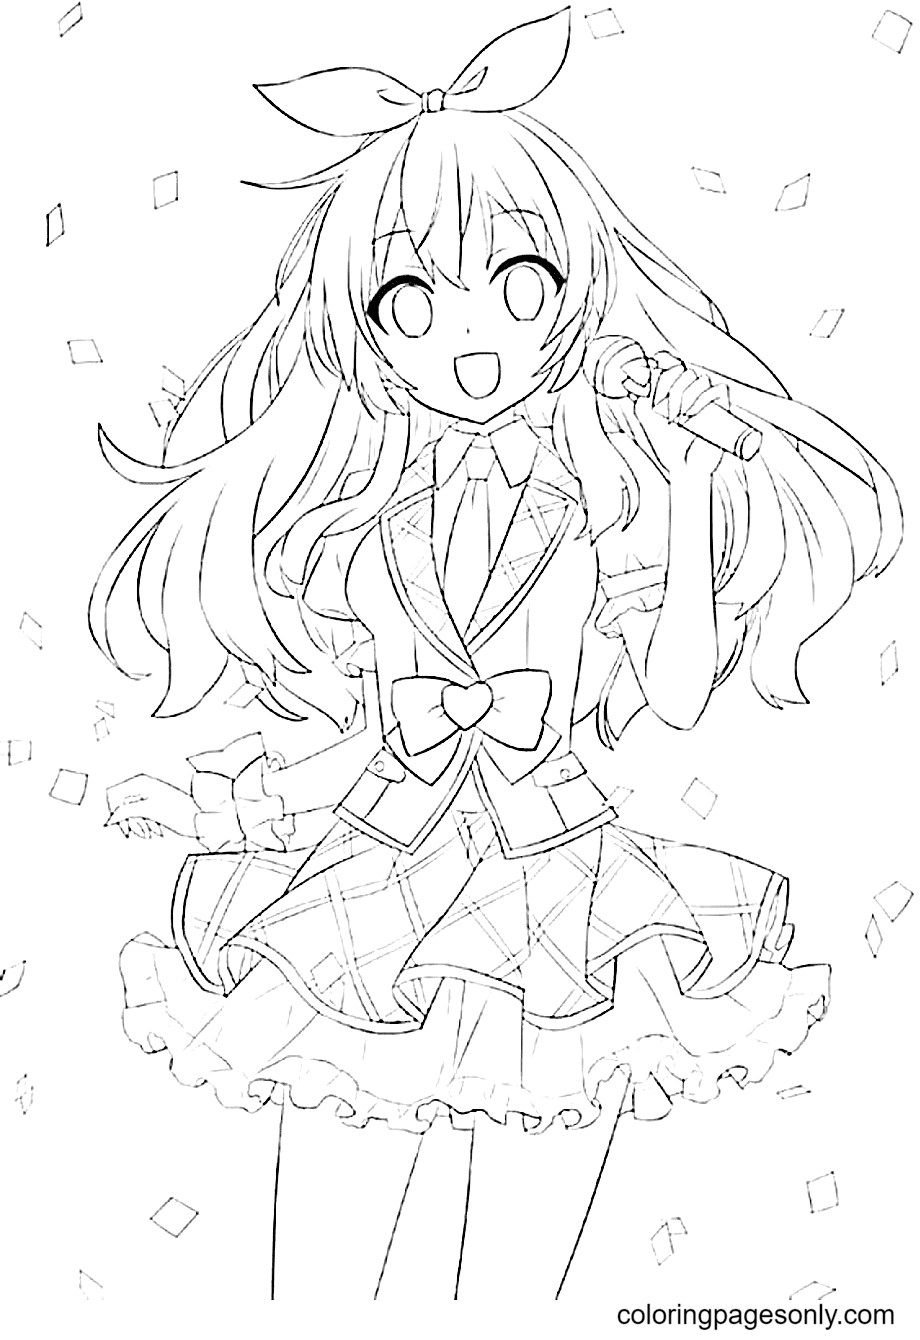 Anime Girl Singing Coloring Page